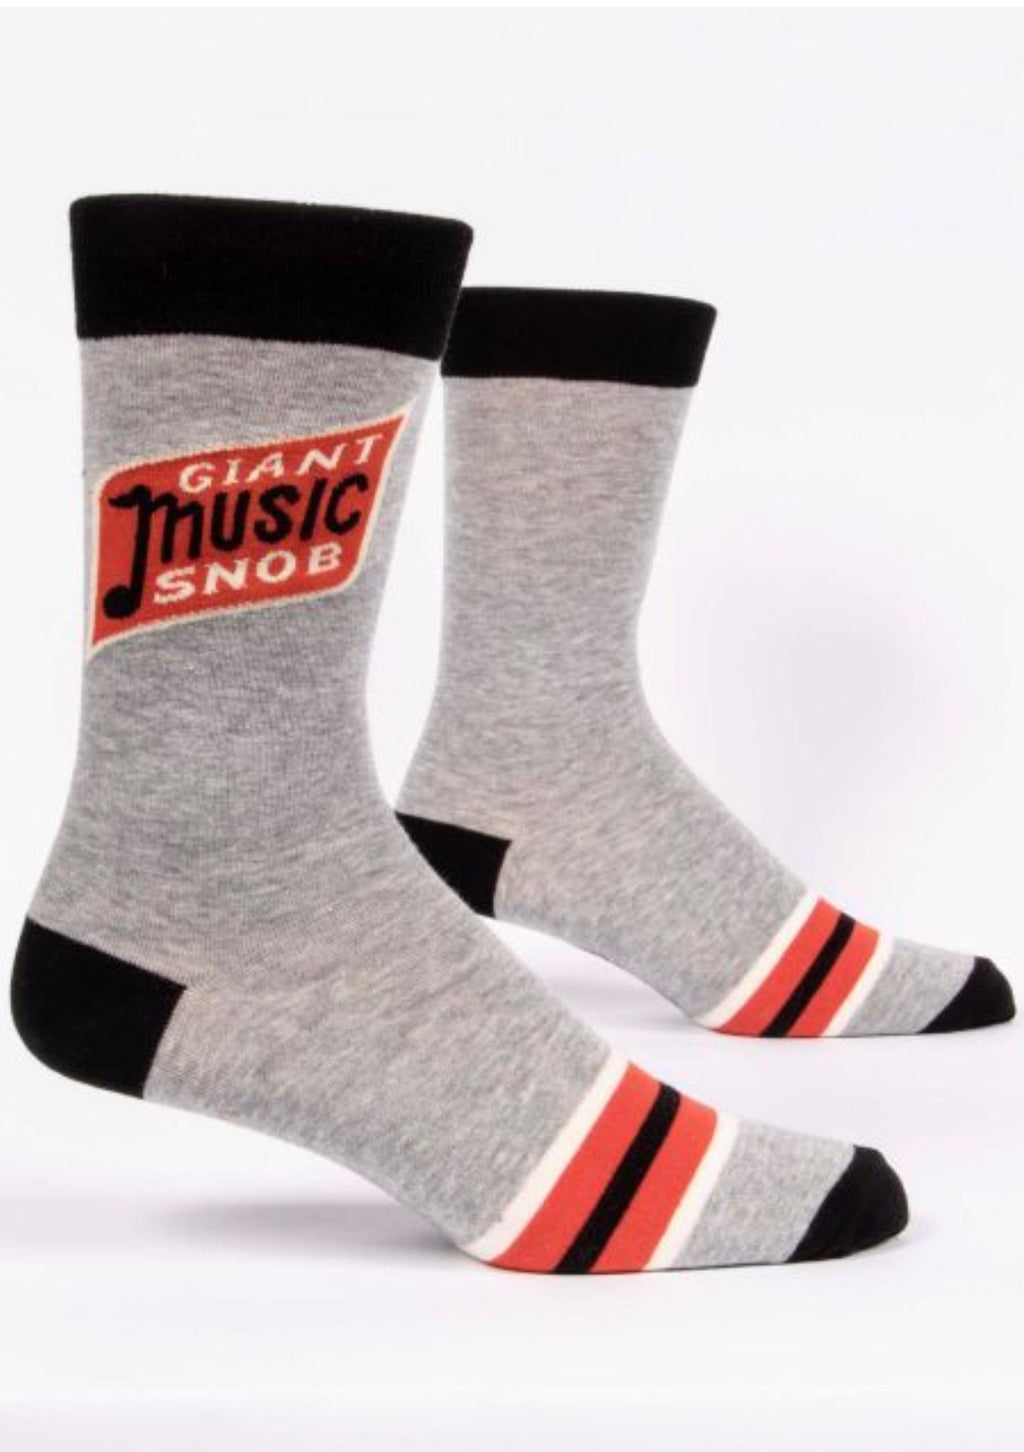 Giant Music Snob Men's Crew Socks OSS